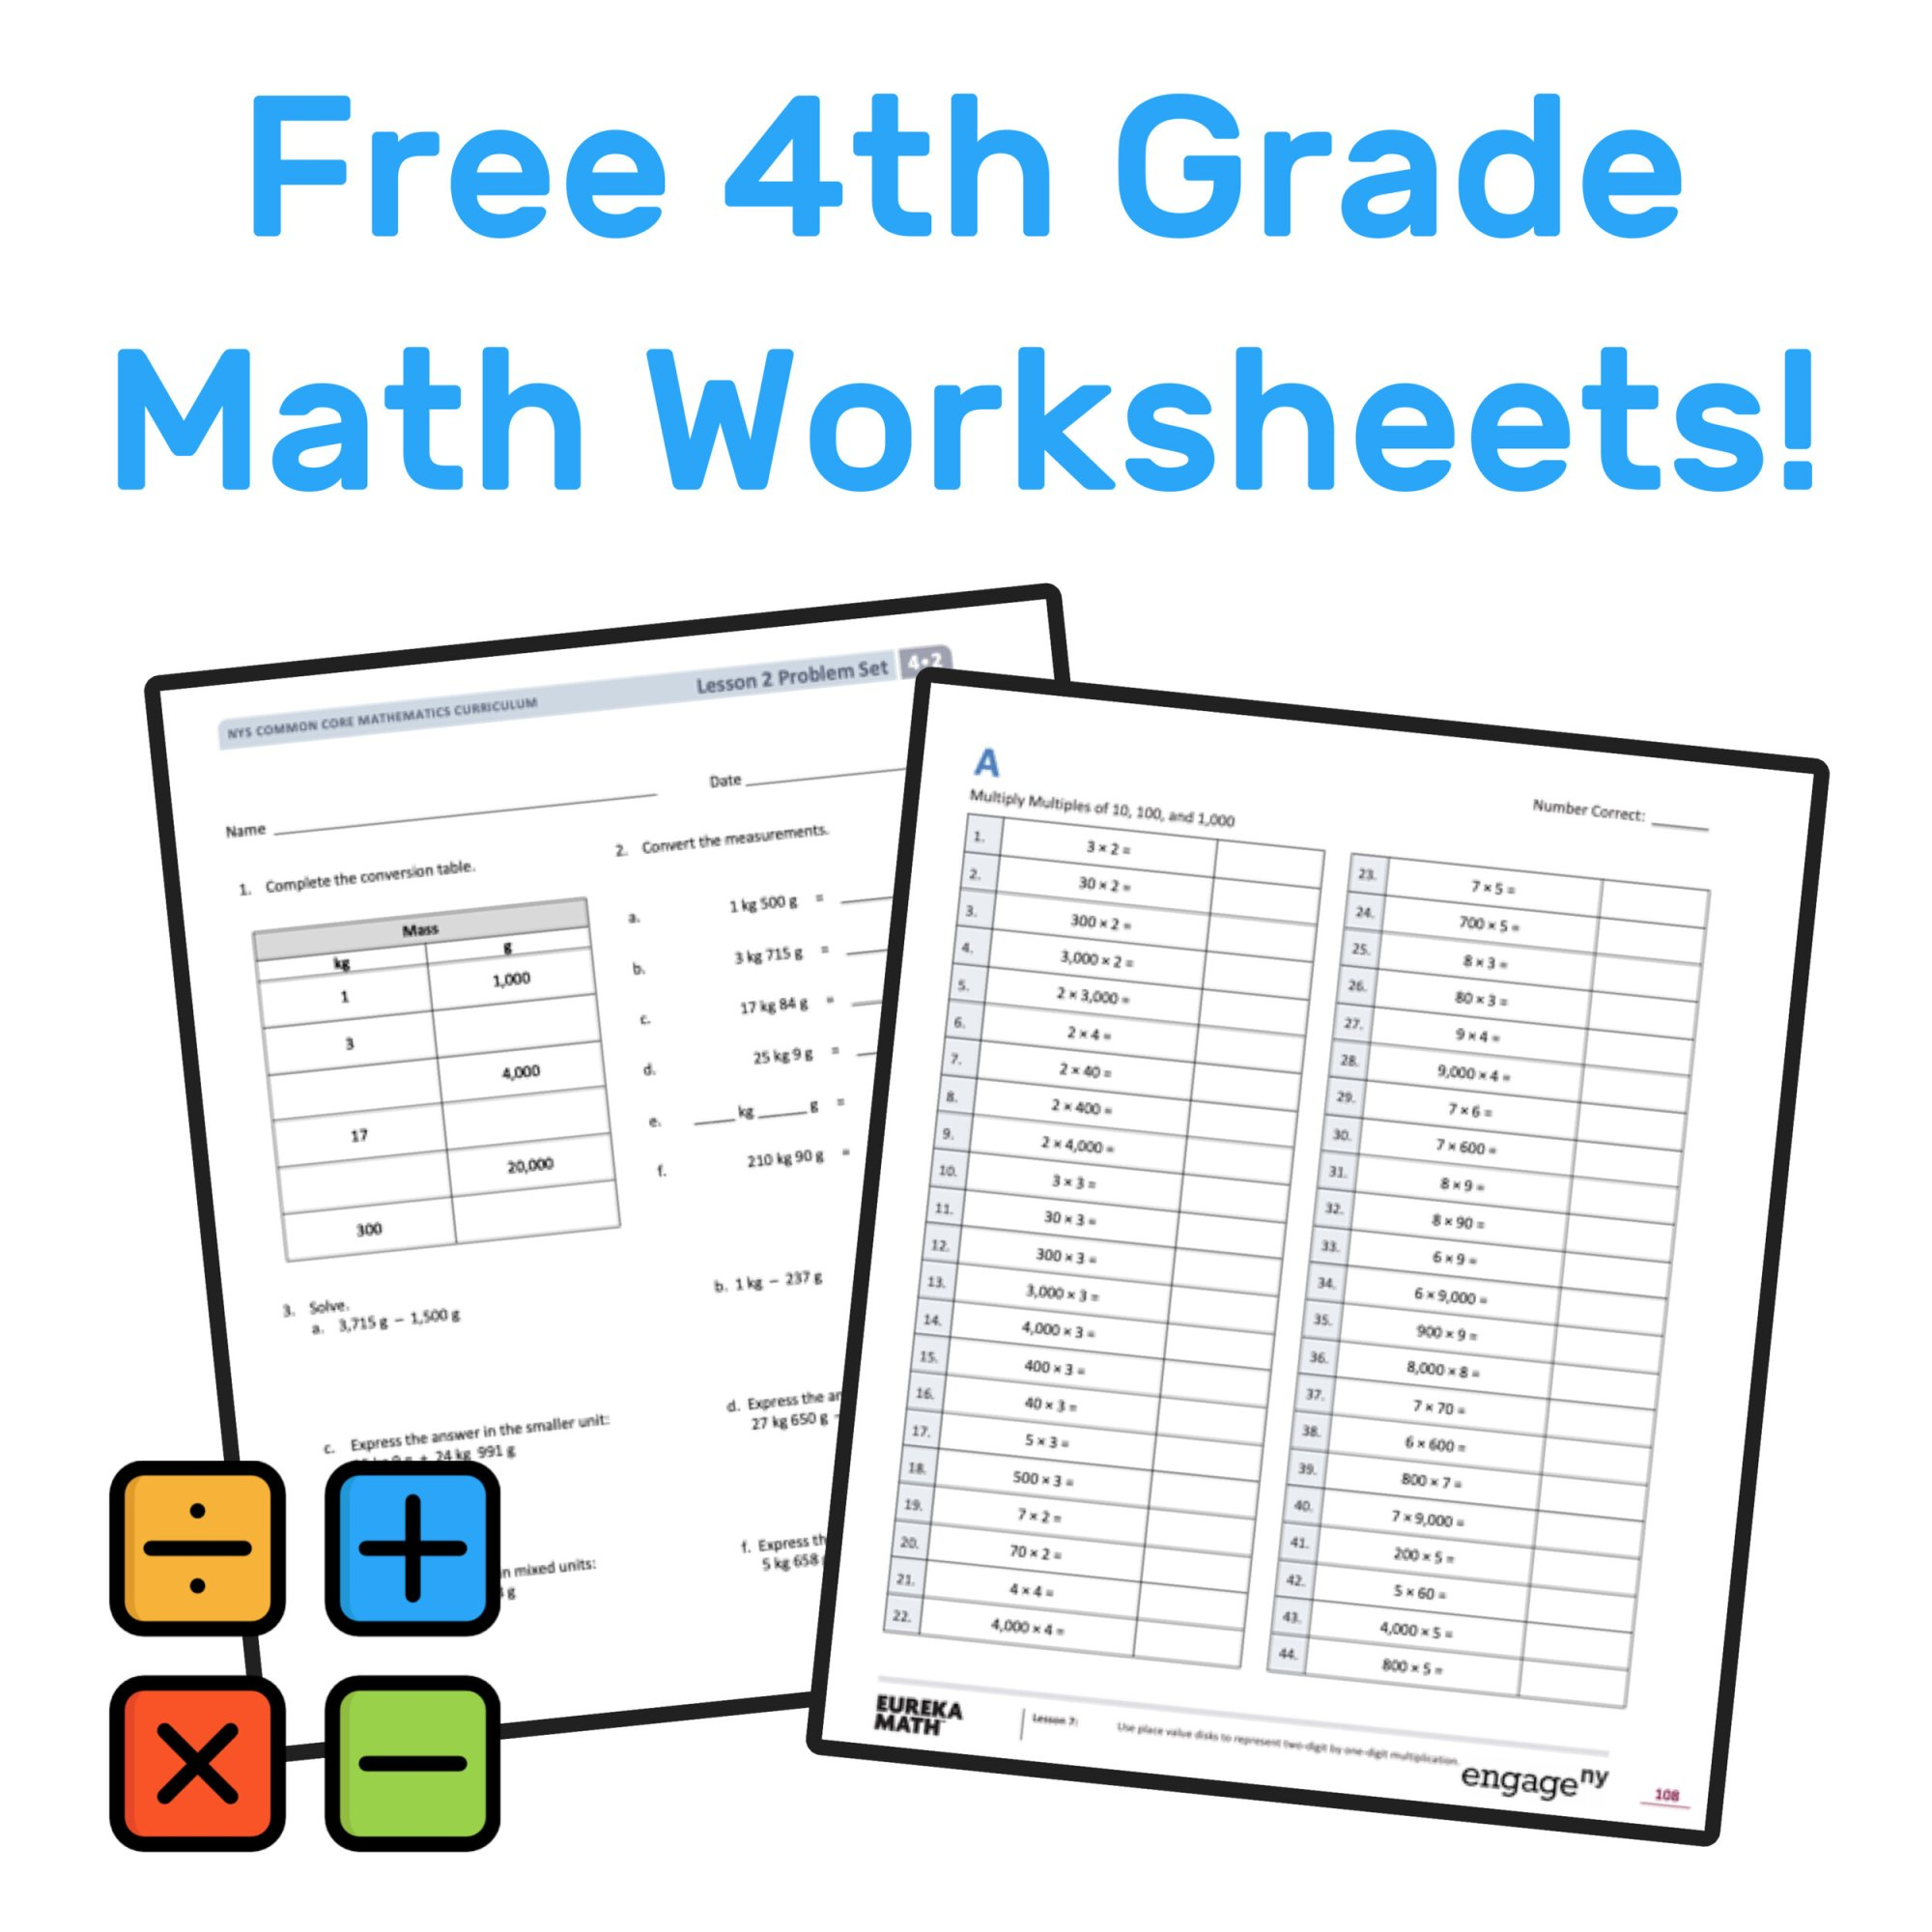 hight resolution of The Best Free 4th Grade Math Resources: Complete List! — Mashup Math